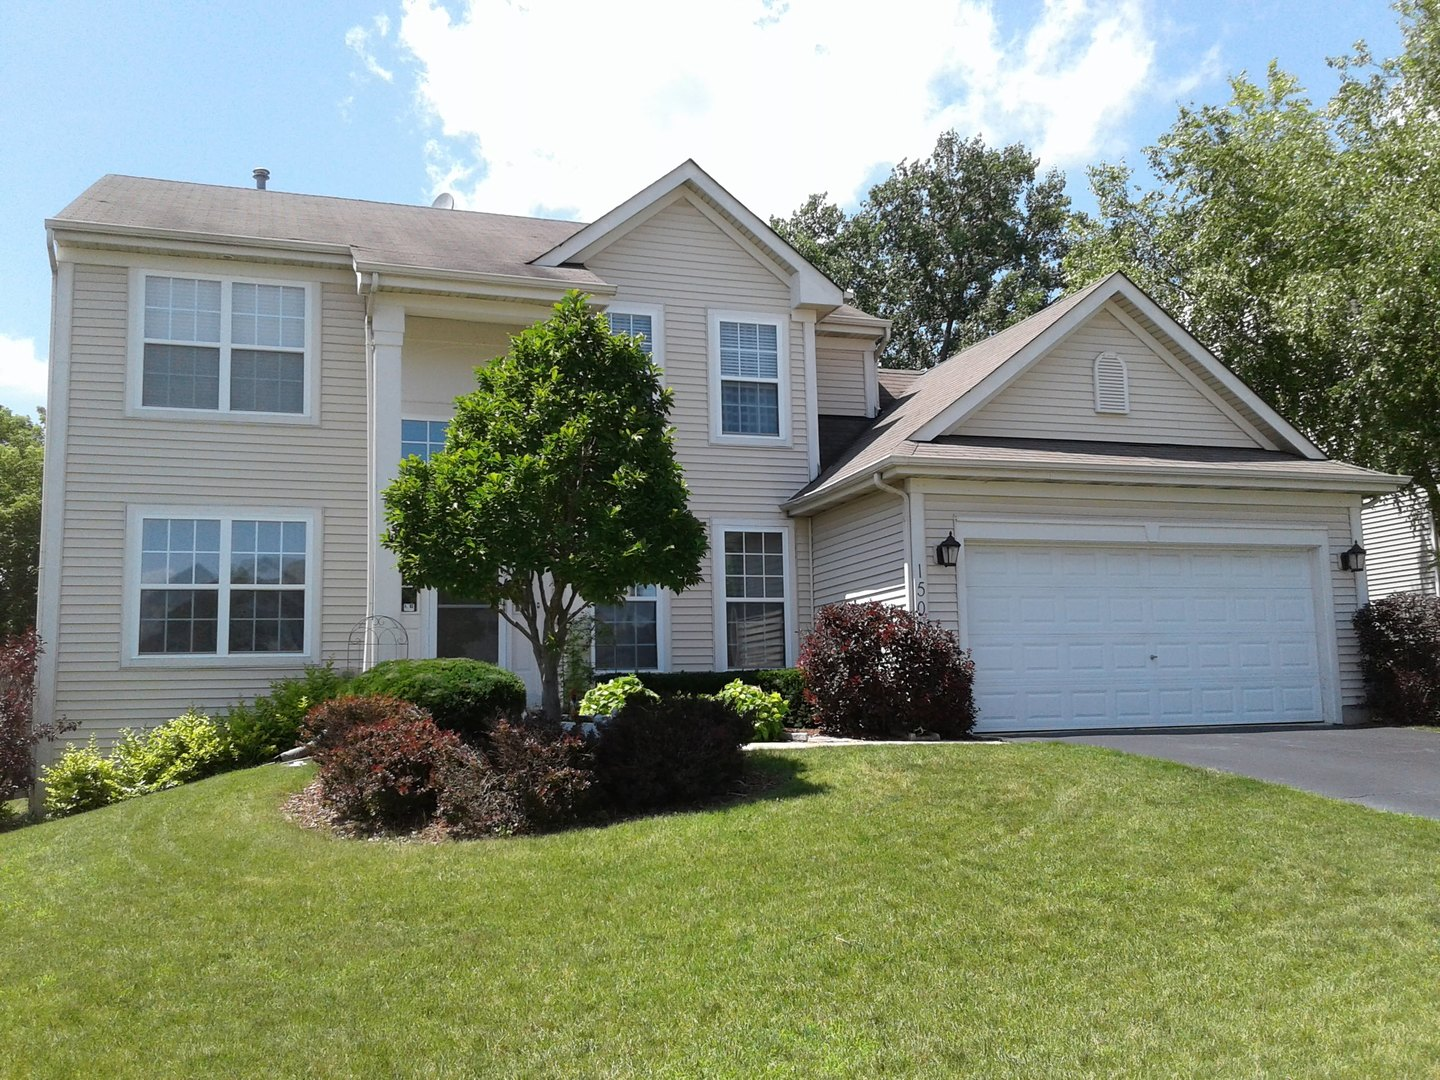 Photo for 150 Winding Canyon Way, Algonquin, IL 60102 (MLS # 10569545)